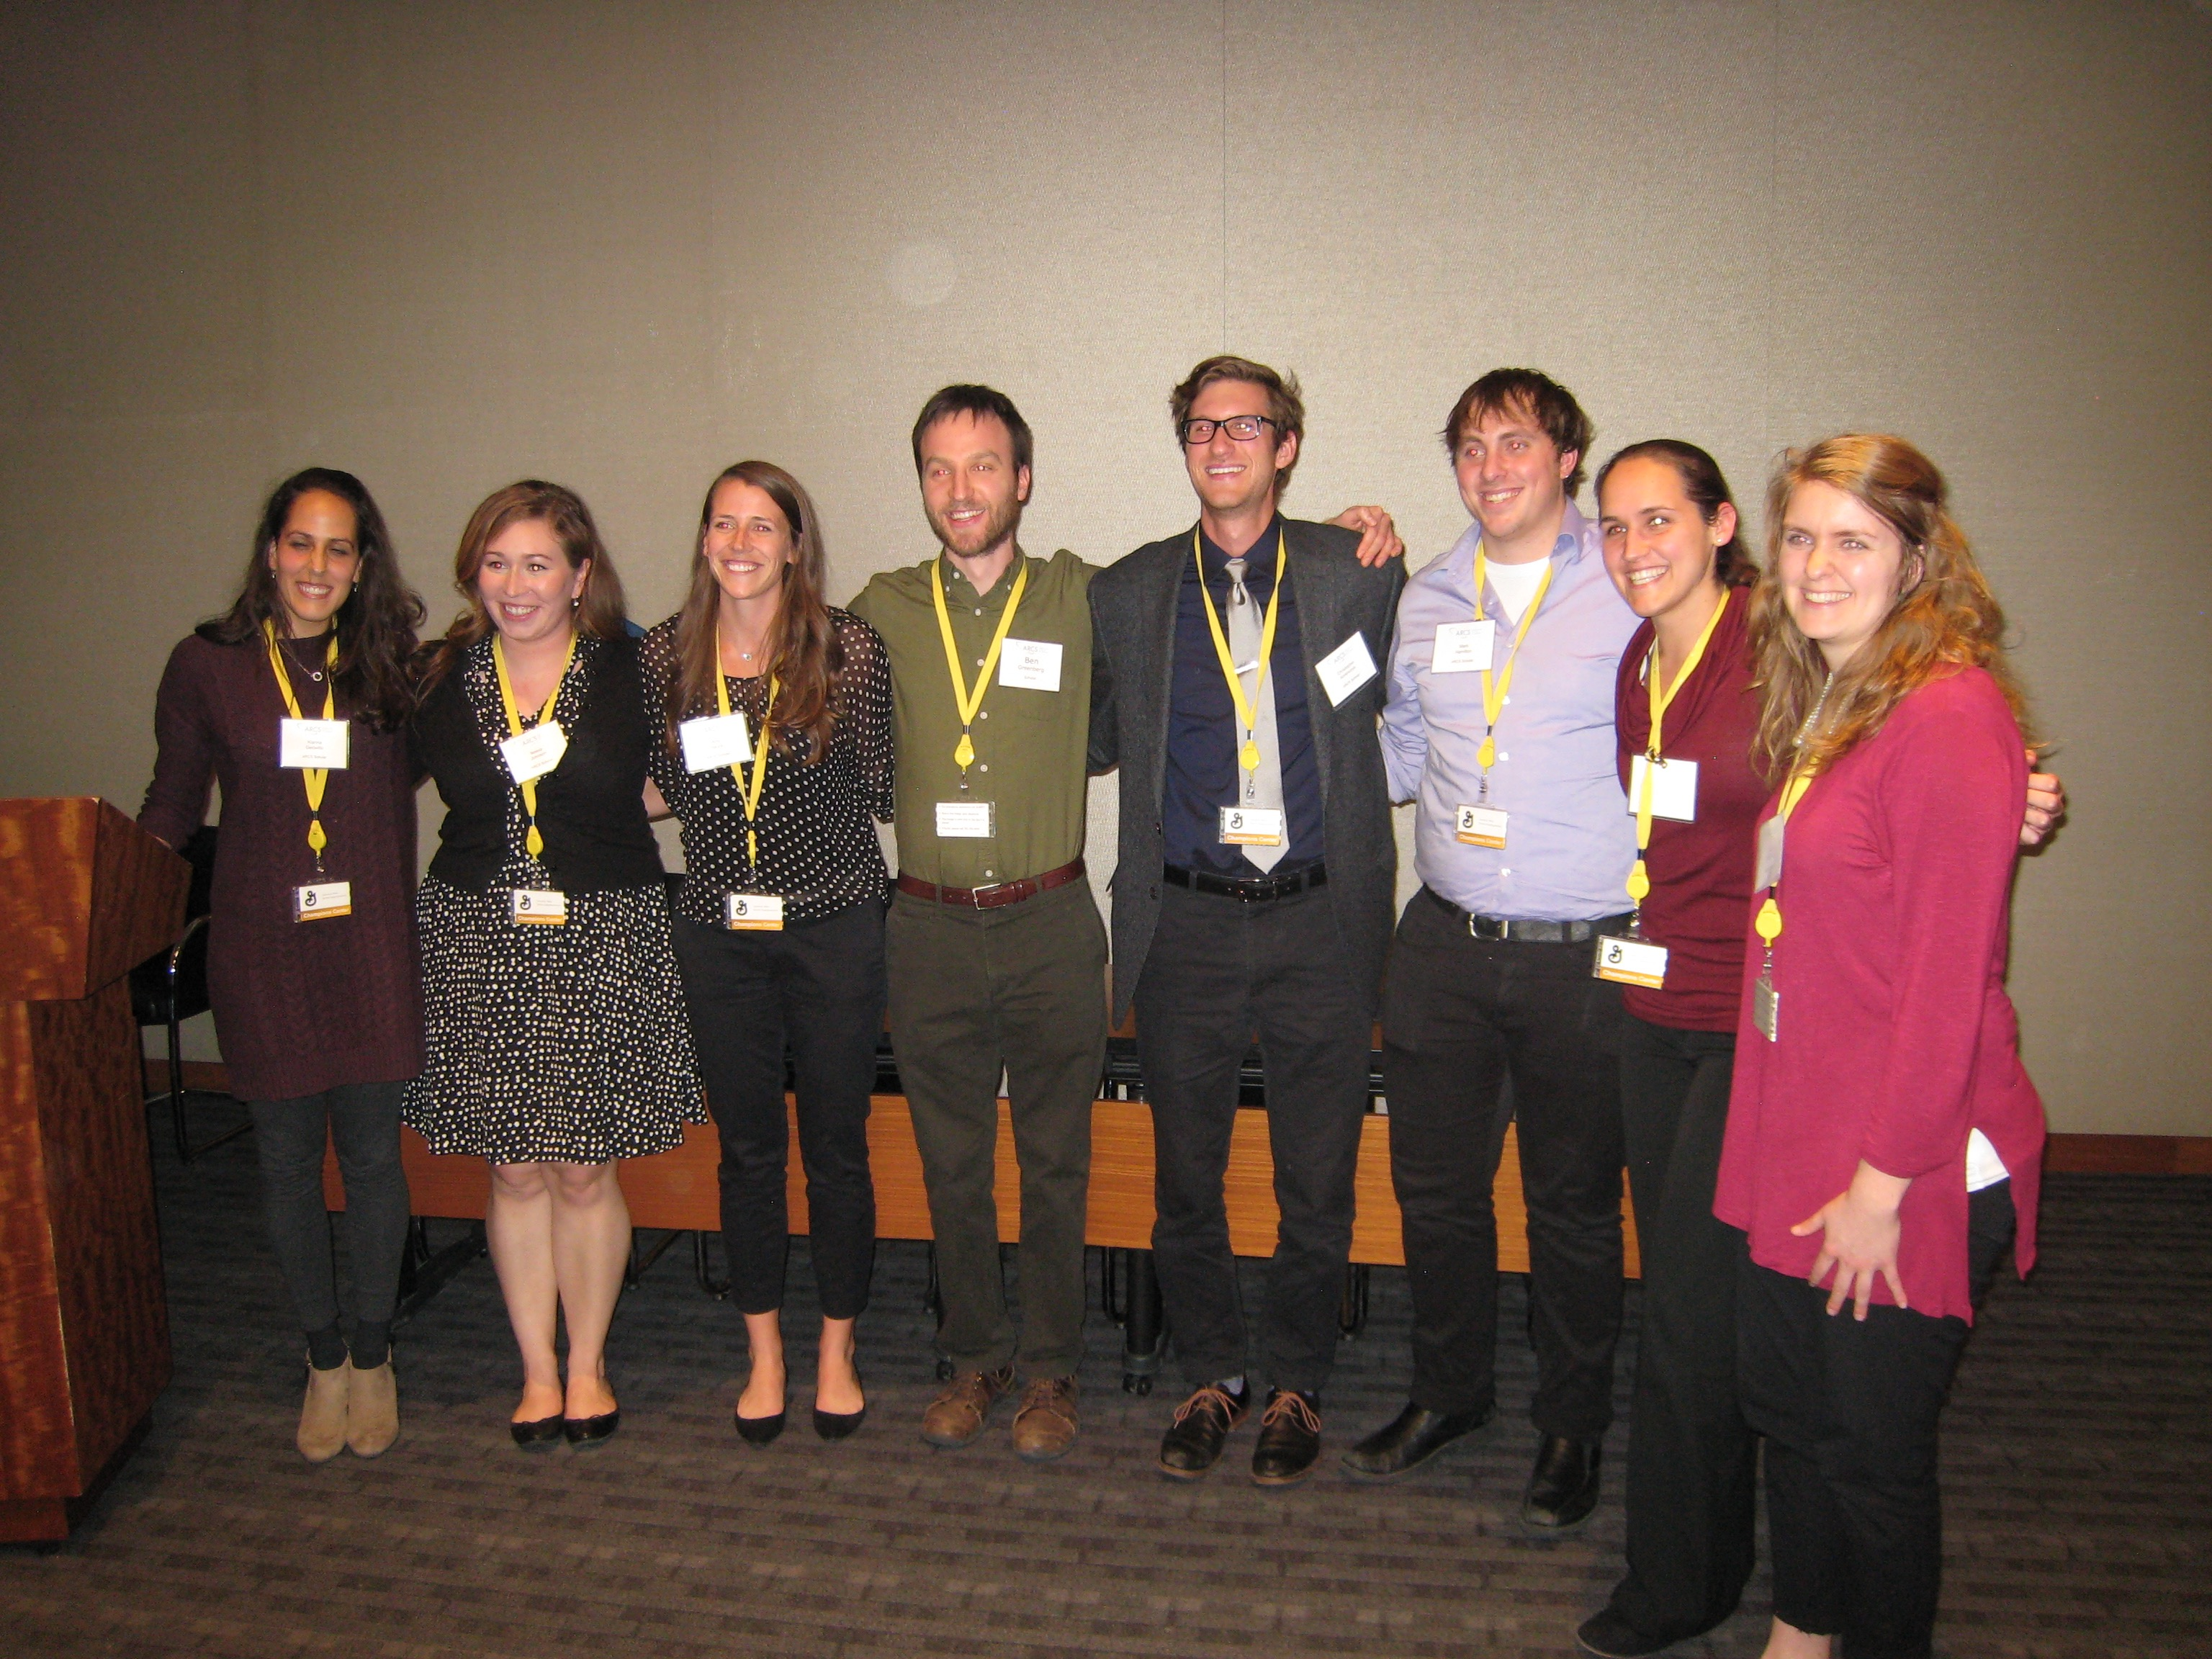 ARCS Minnesota Chapter Scholars